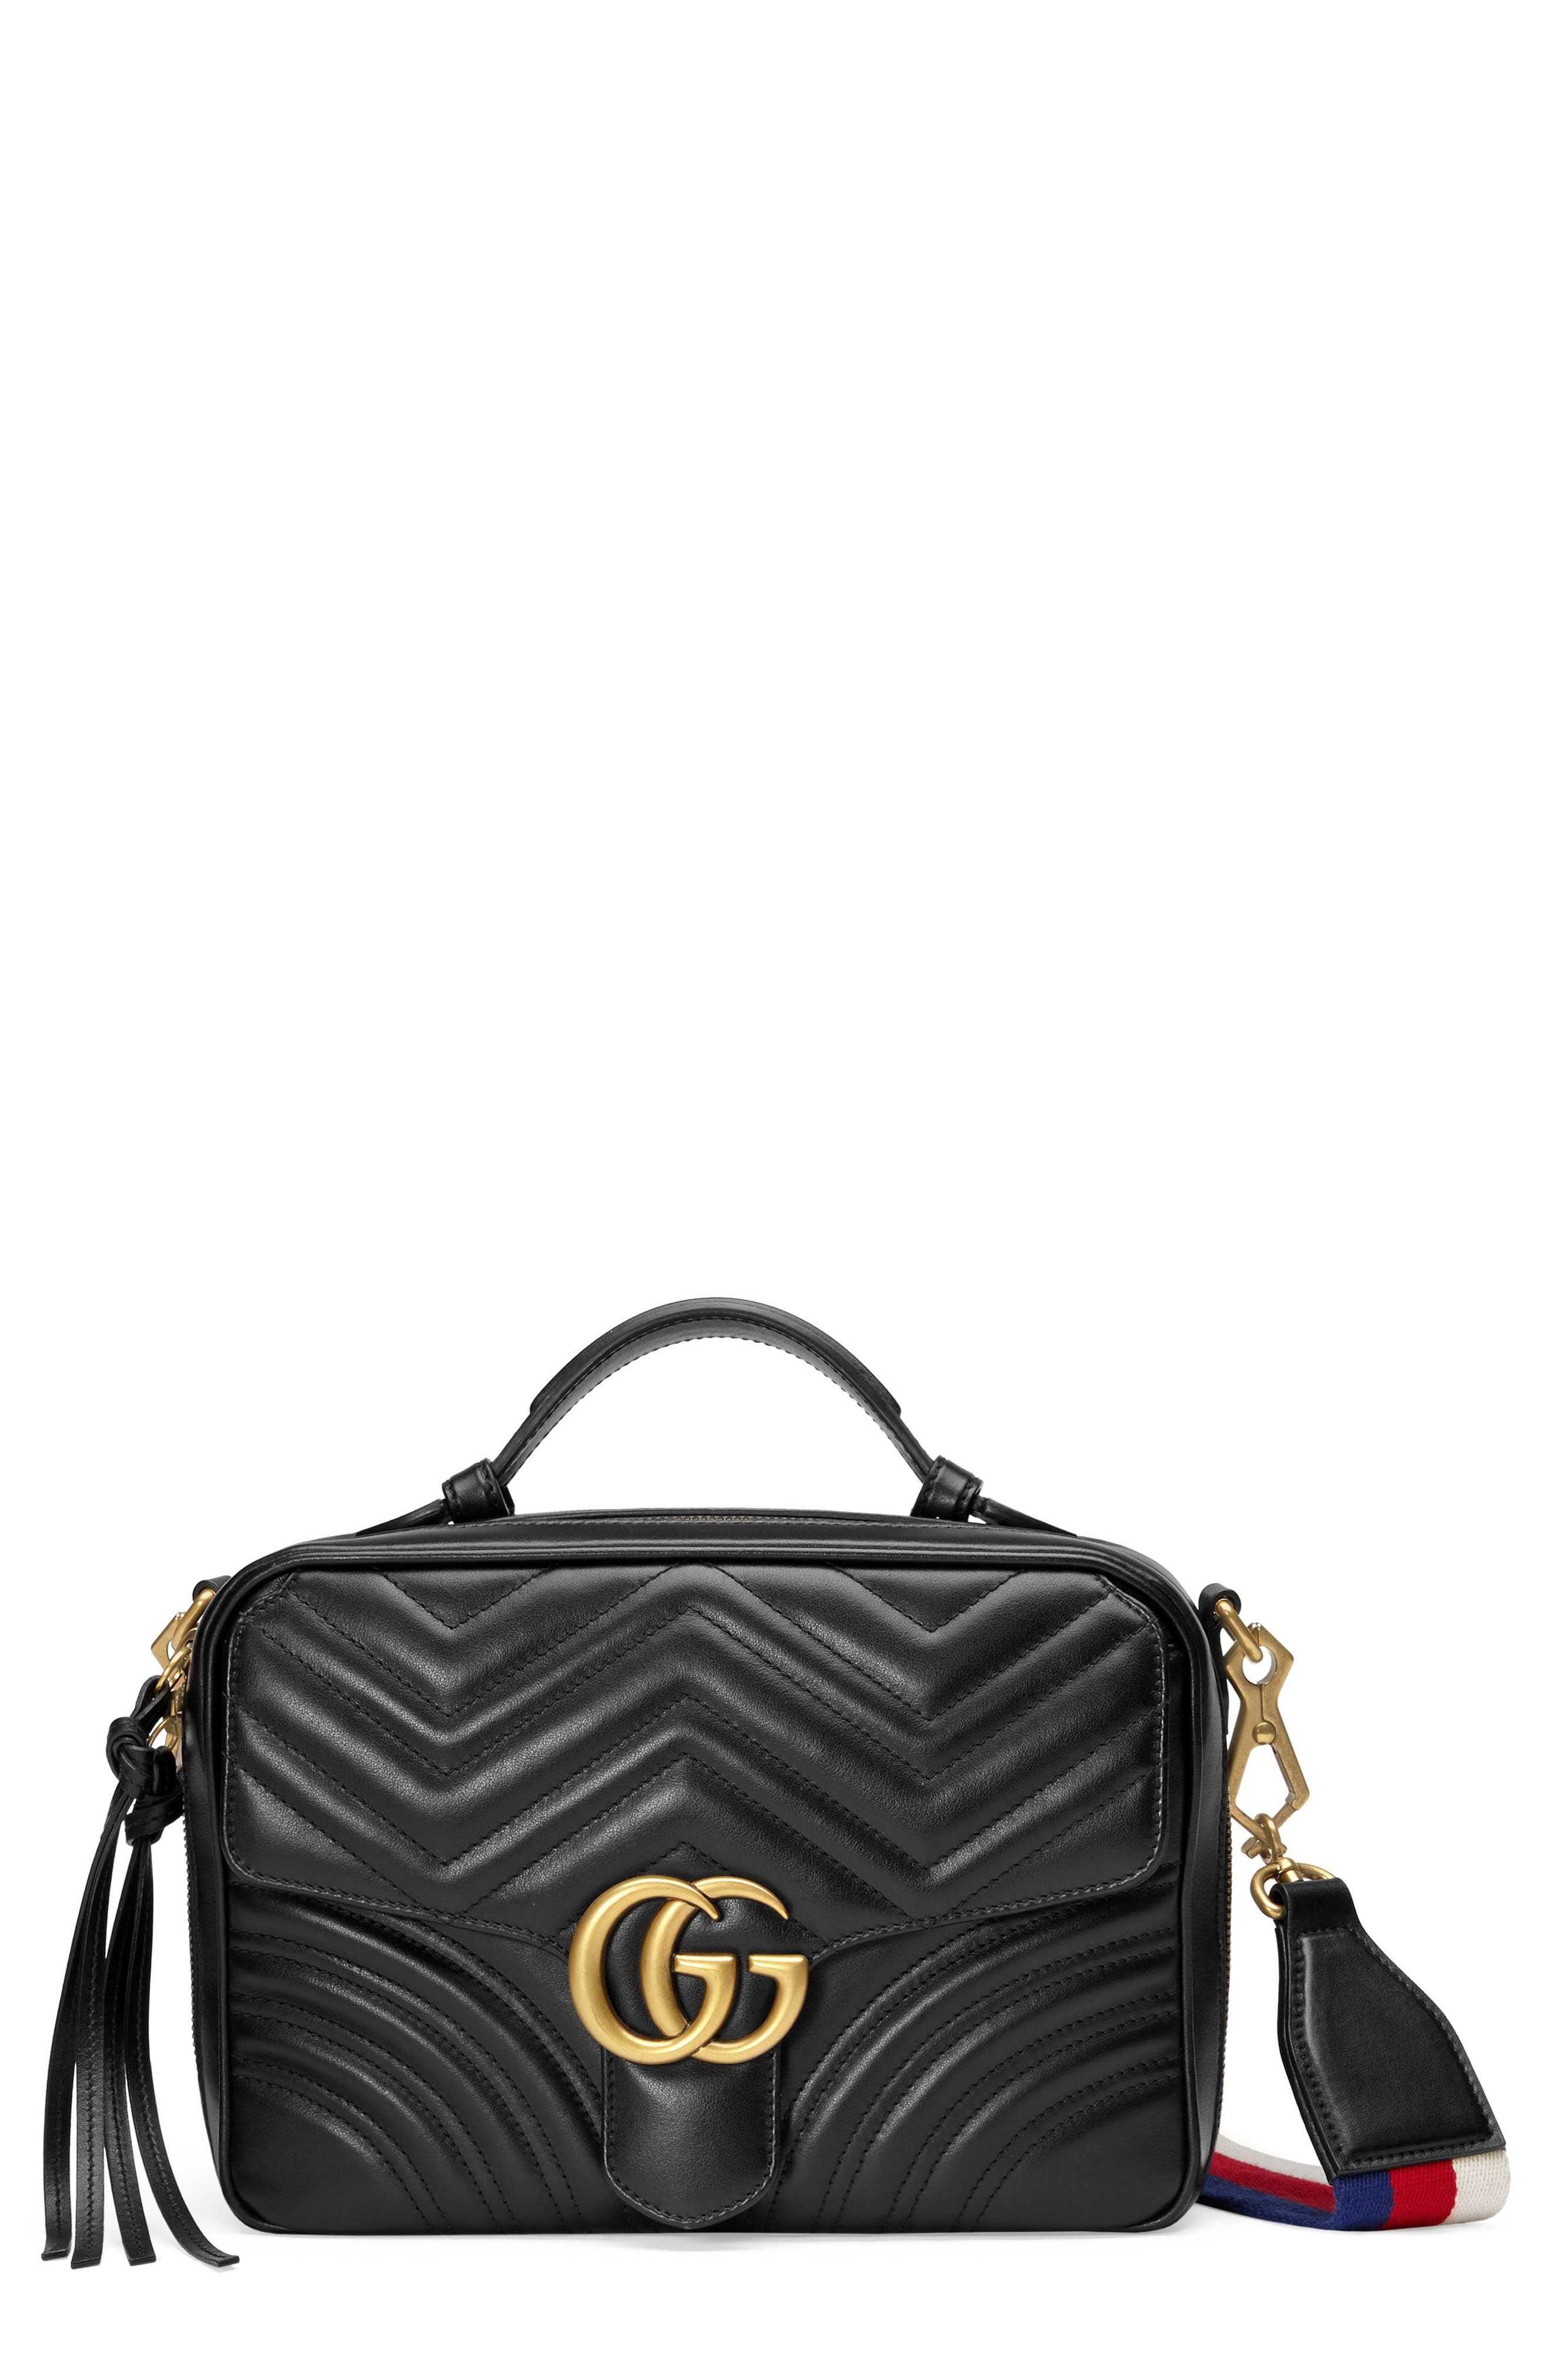 GUCCI, Small GG Marmont 2.0 Matelassé Leather Camera Bag with Webbed Strap, Main thumbnail 1, color, NERO/ WHITE/ HIBISCUS RED